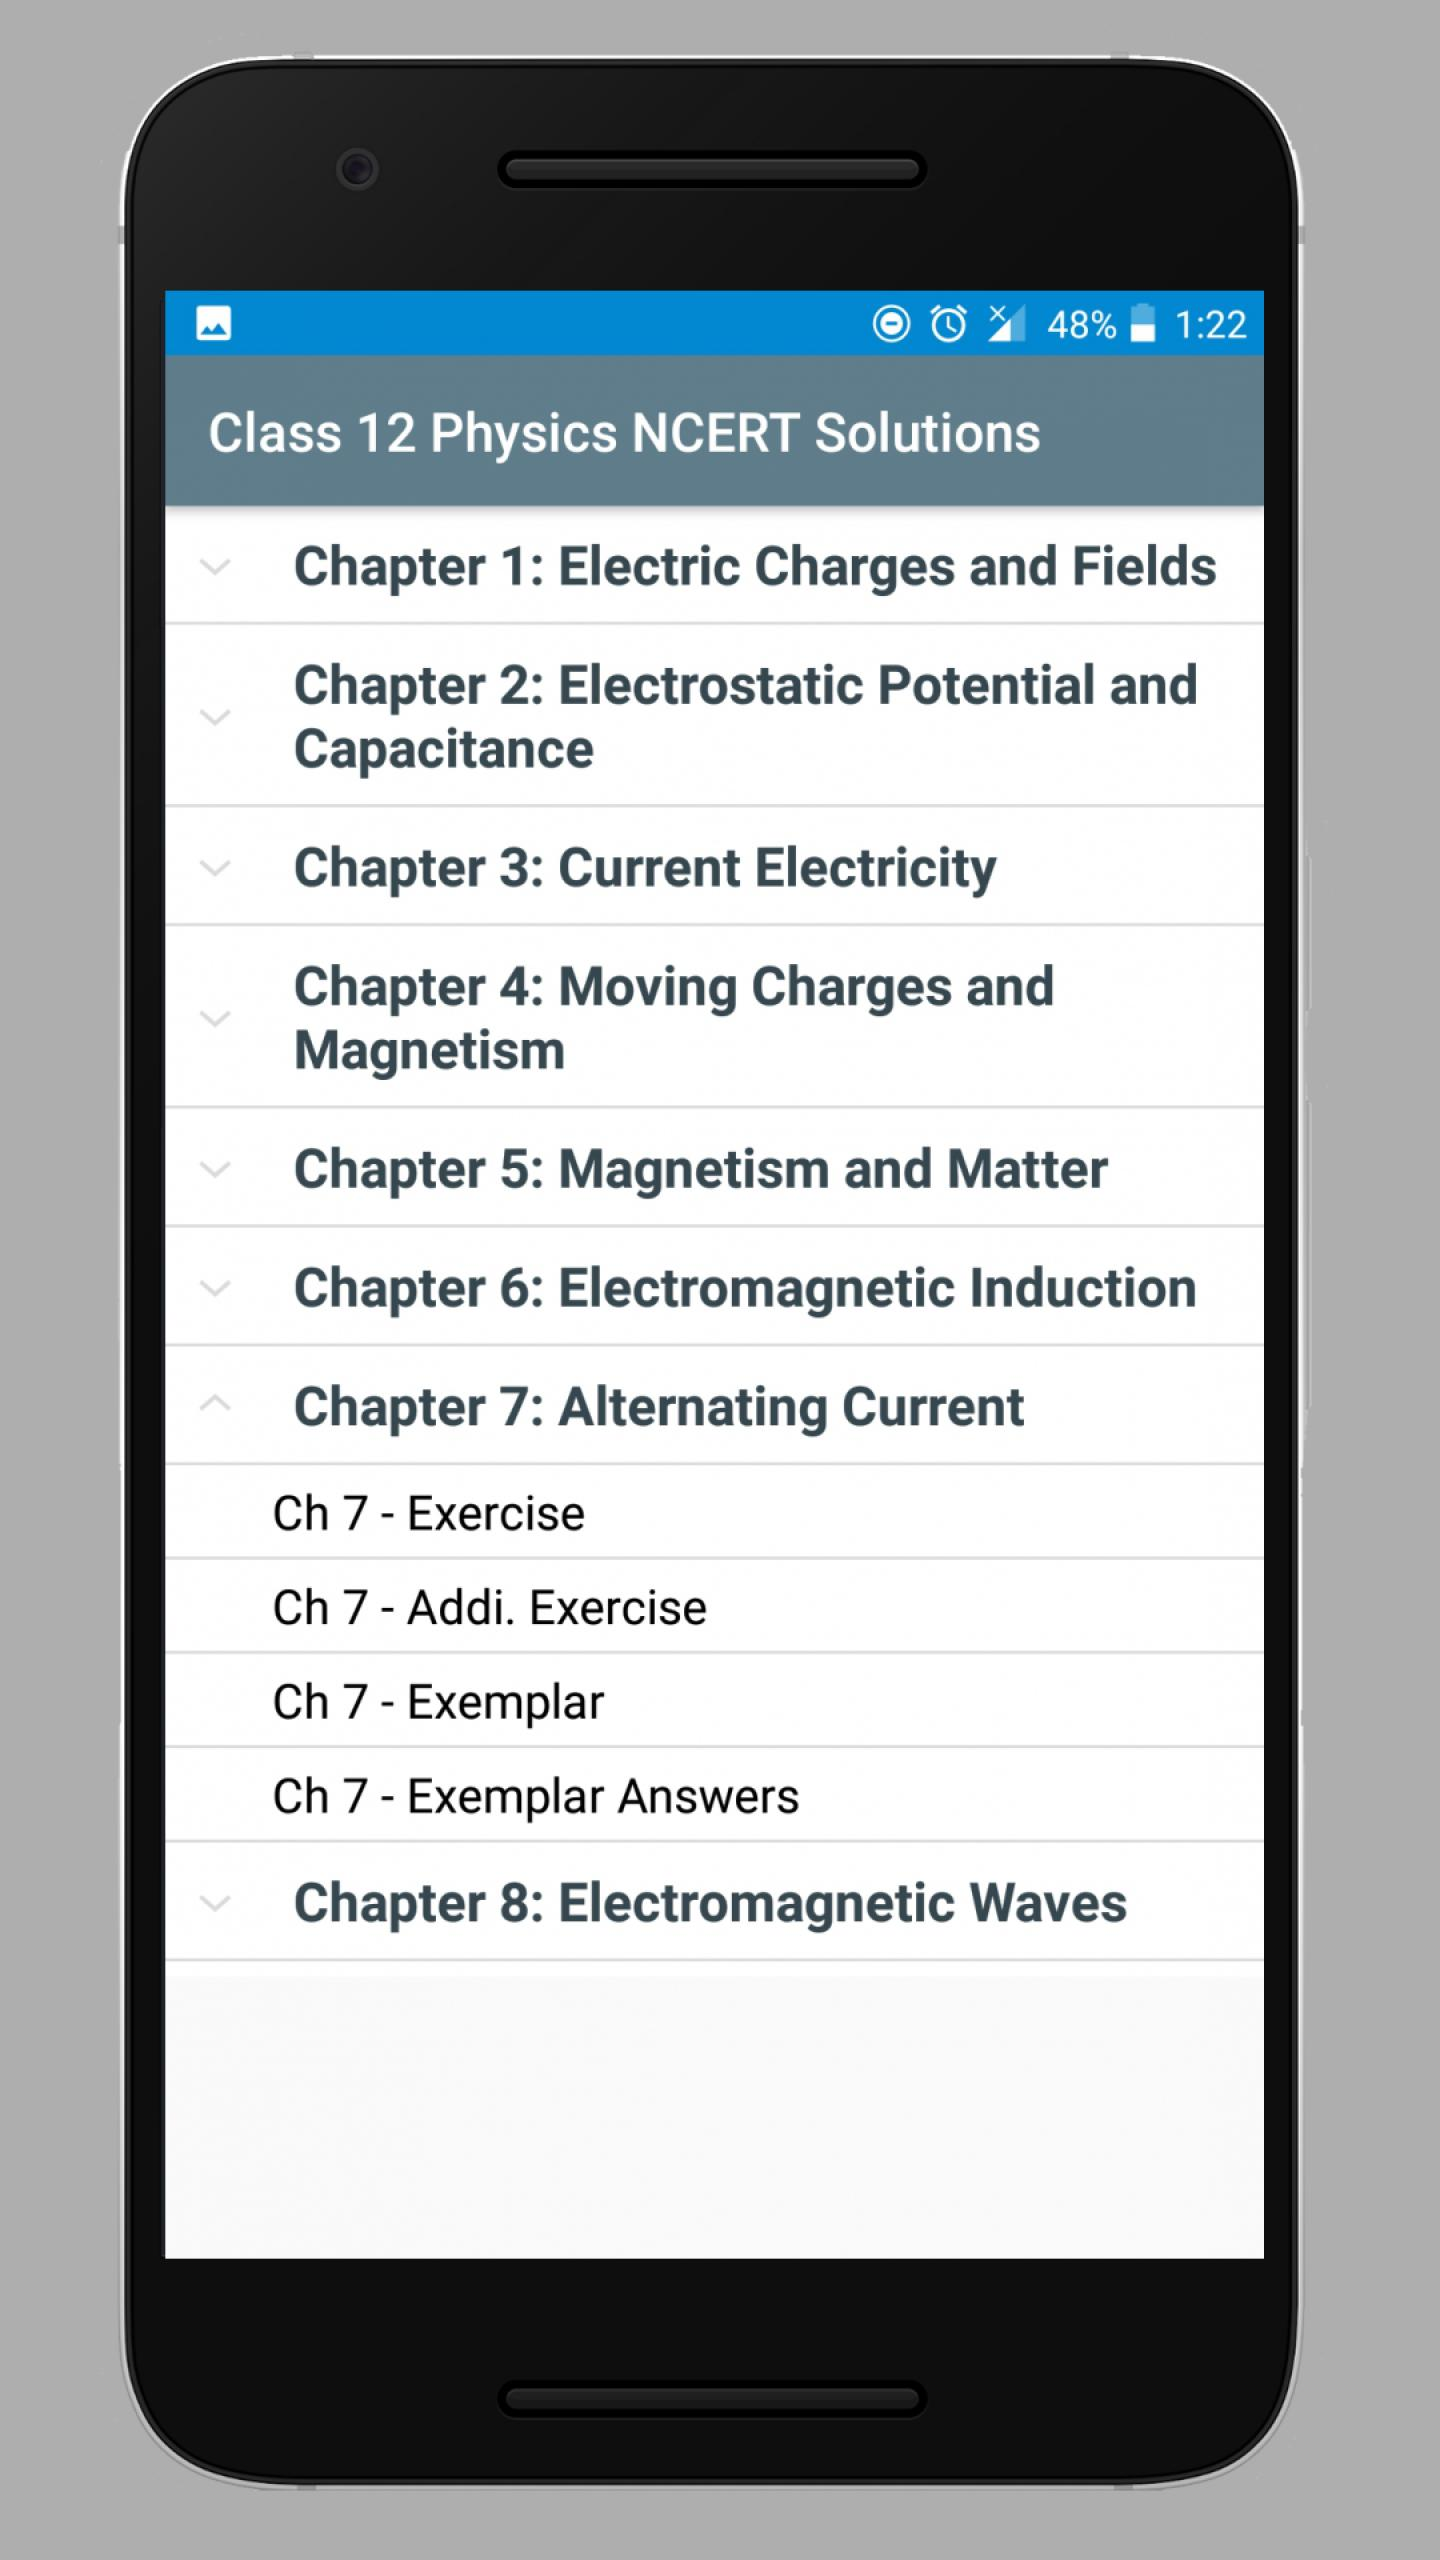 Class 12 Physics NCERT Solutions for Android - APK Download